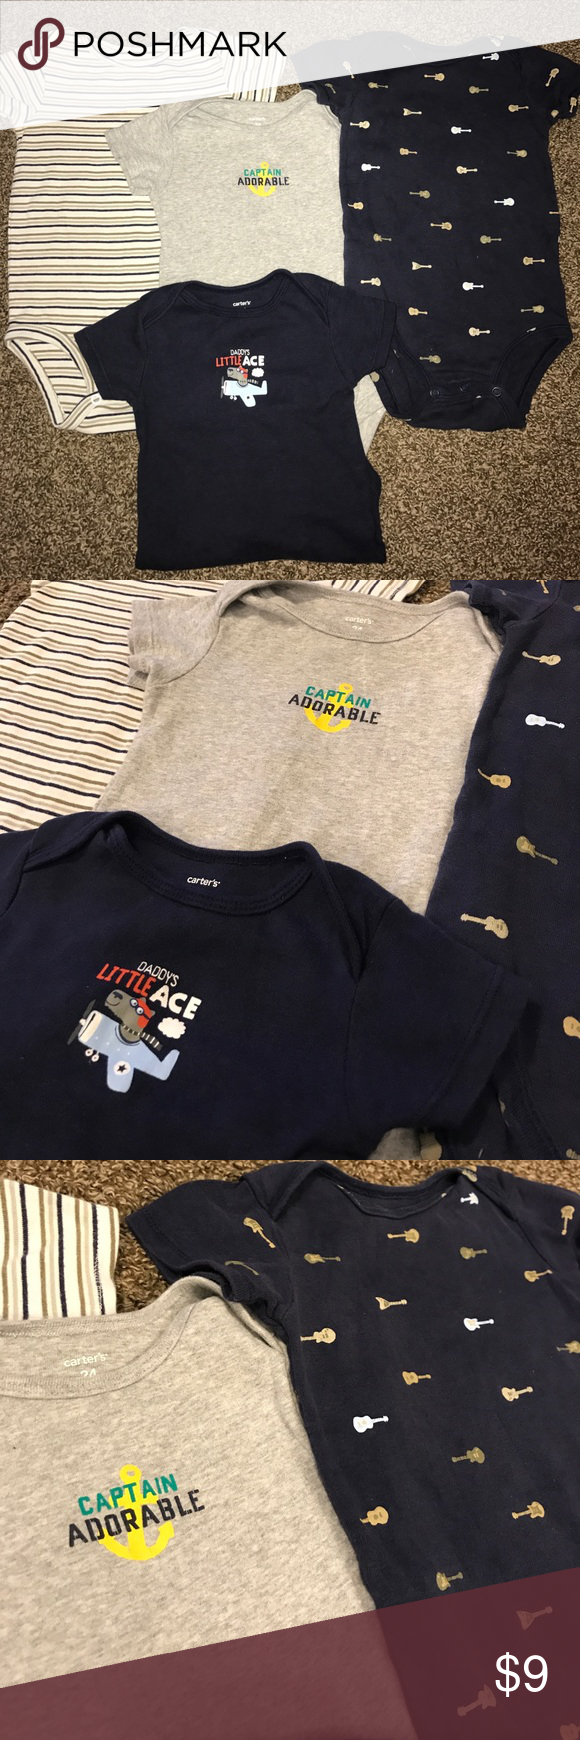 🎸Carter's 4-pack of onesies 🎸 All onesies are in great condition. Comes from a smoke and pet-free home. 🌺 bundle and save or make an offer 🌺 Carter's One Pieces Bodysuits